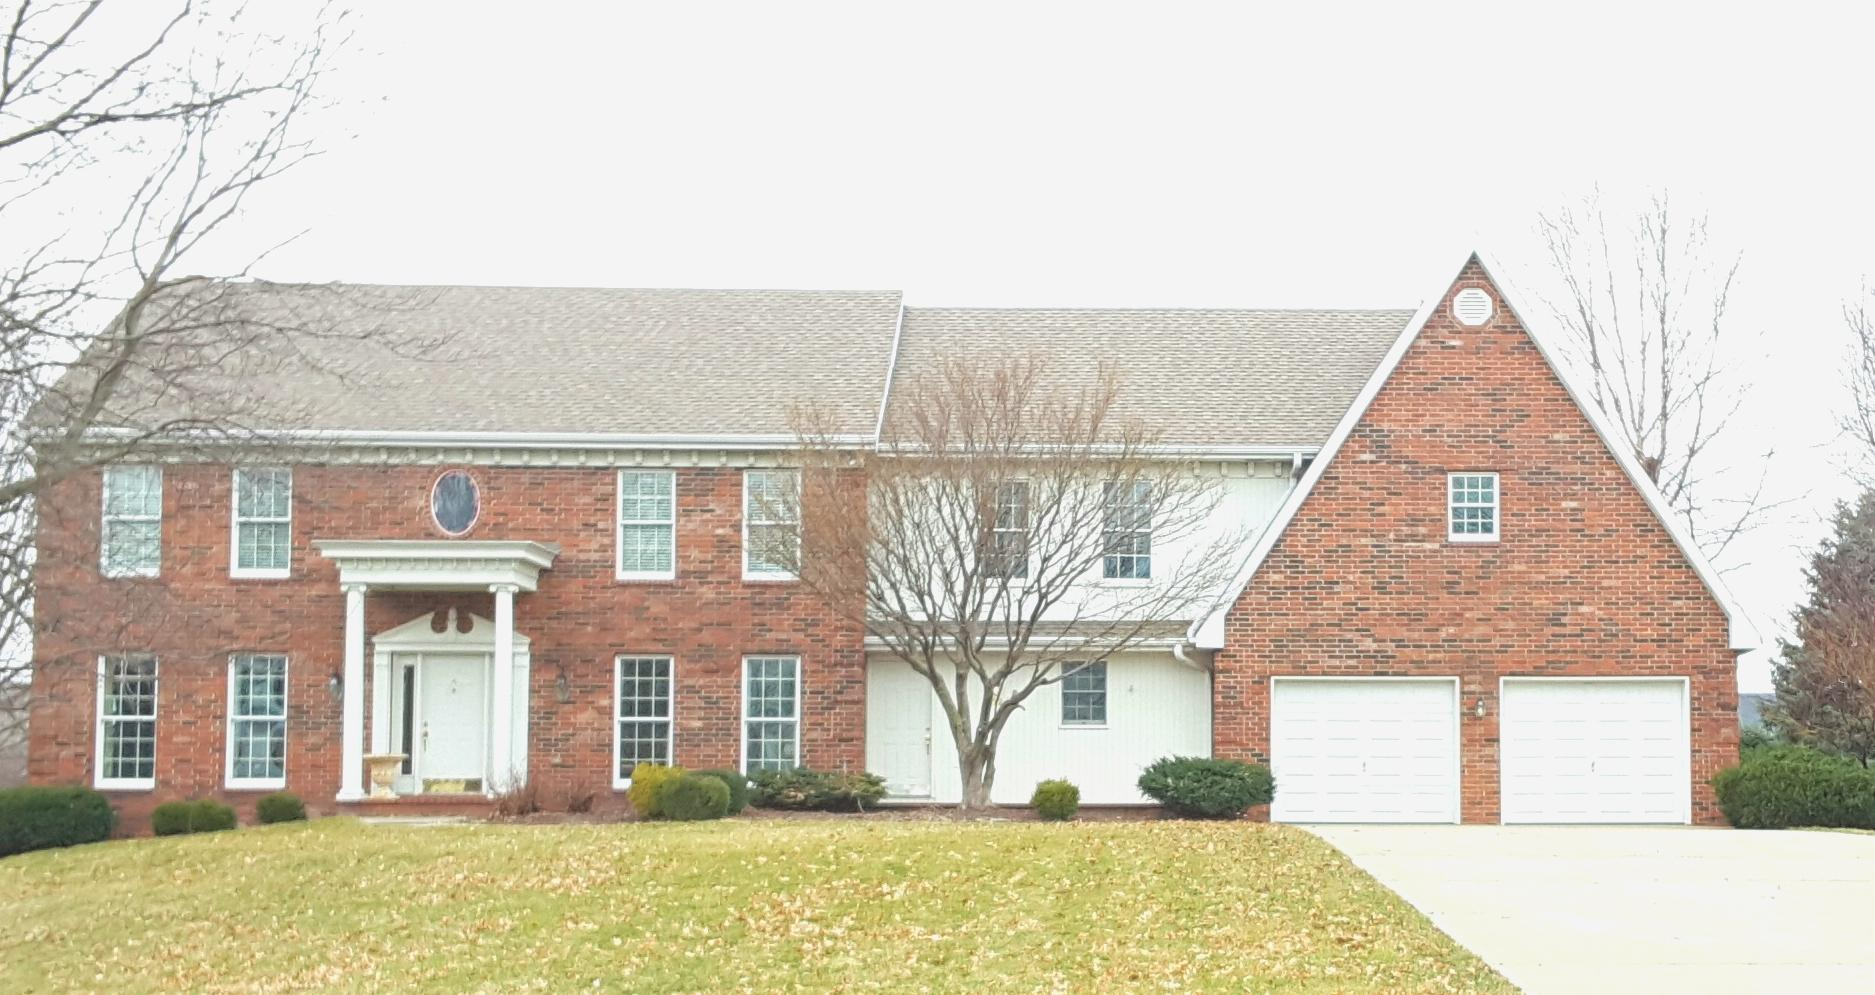 1024 VICTORY LN, Maryville, Missouri 64468, 5 Bedrooms Bedrooms, ,4 BathroomsBathrooms,Residential,VICTORY,4386